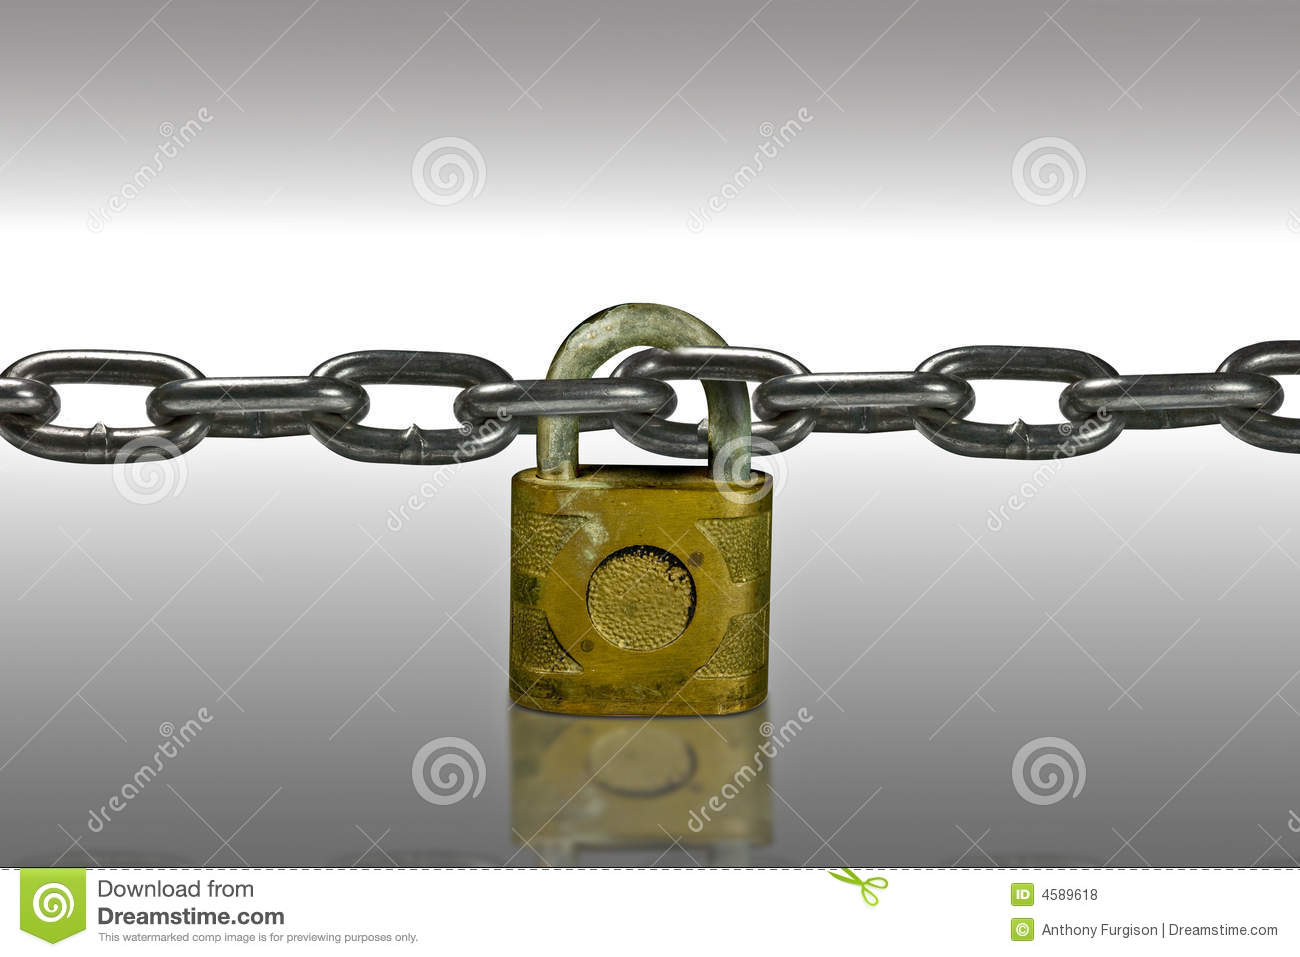 Security lock and chain